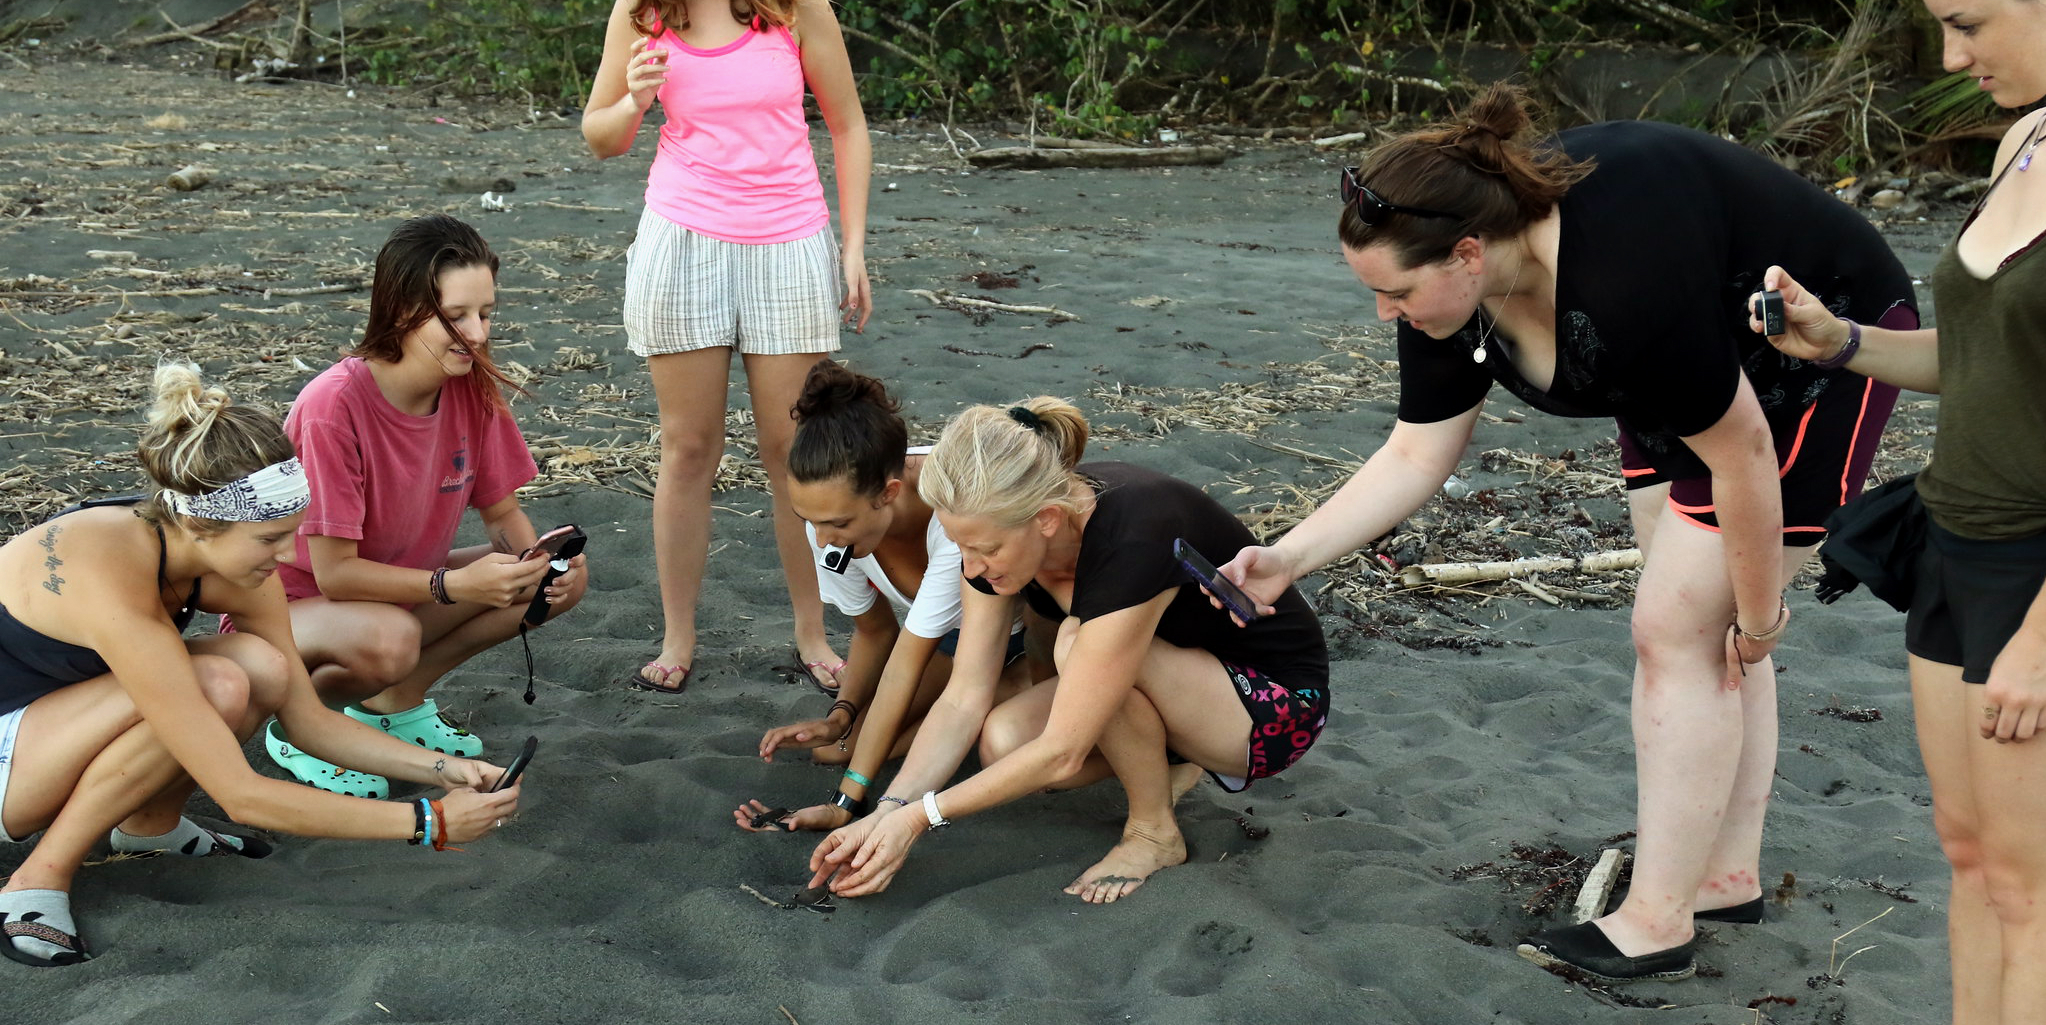 Volunteers in Seychelles are demonstrating the effects of the digital diet and the negative effects of social media by looking at baby turtles through their smartphones instead of being in the moment.